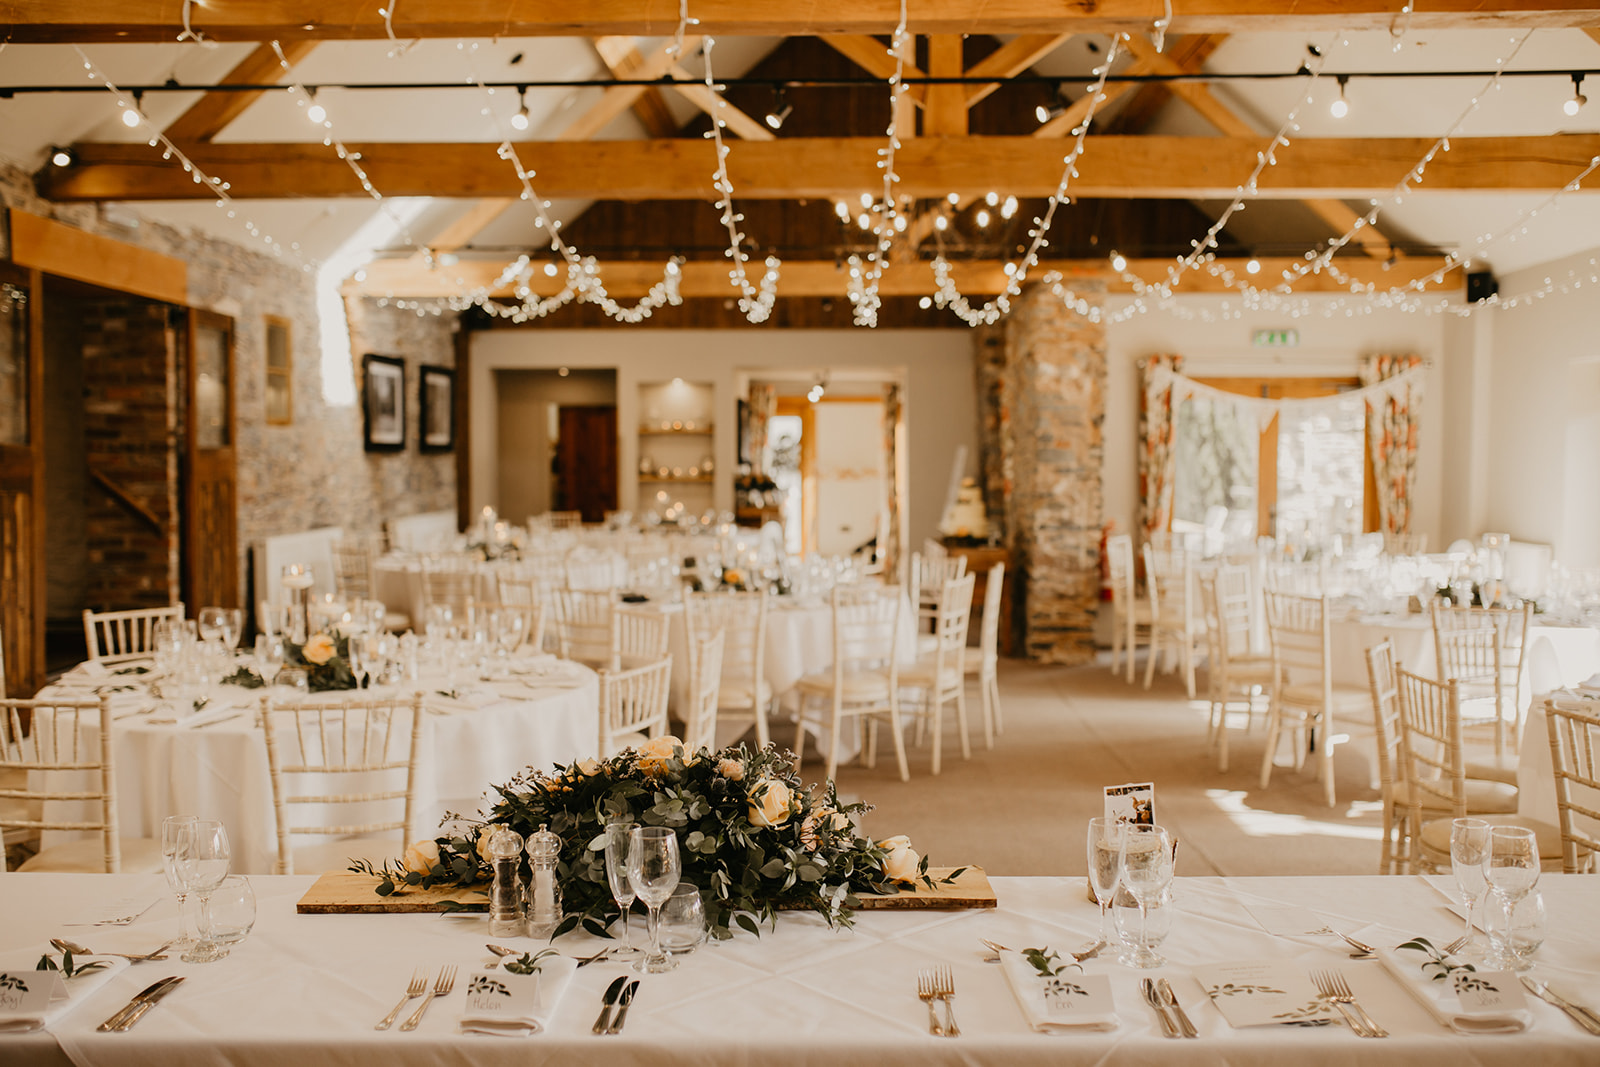 The-Old-Stables-Wedding-616_websize.jpg